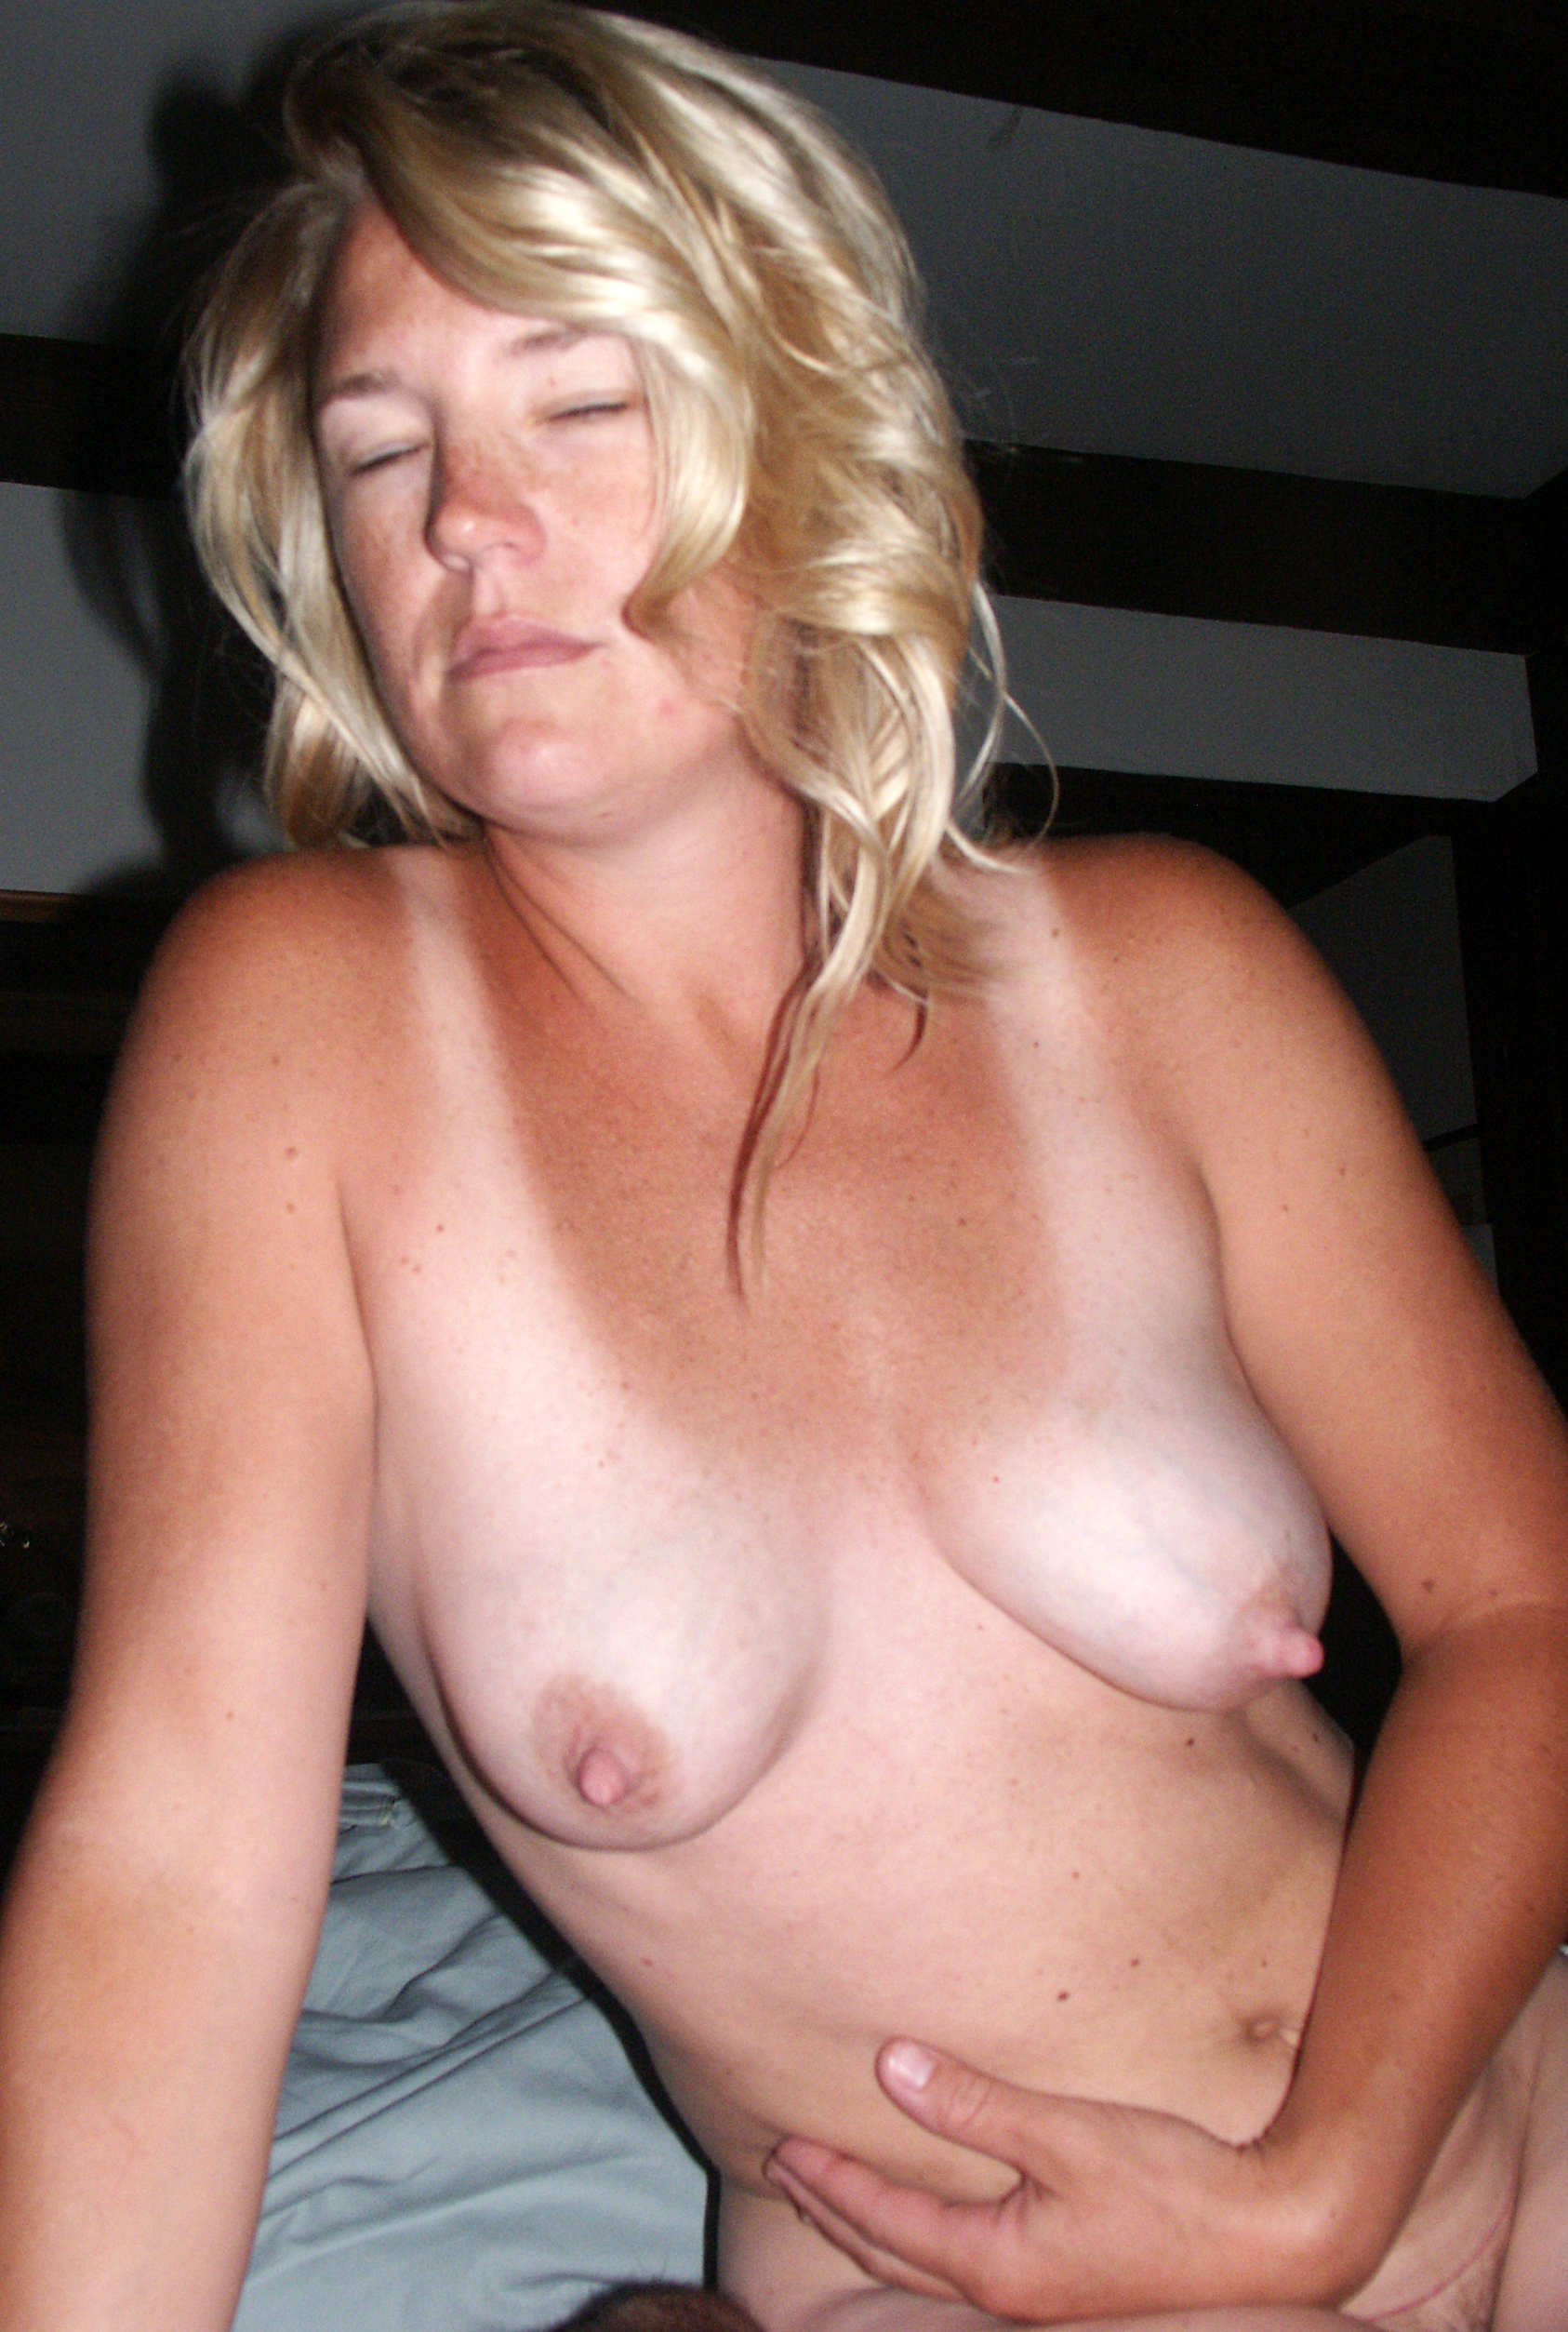 big floppy tits drunk and passed out